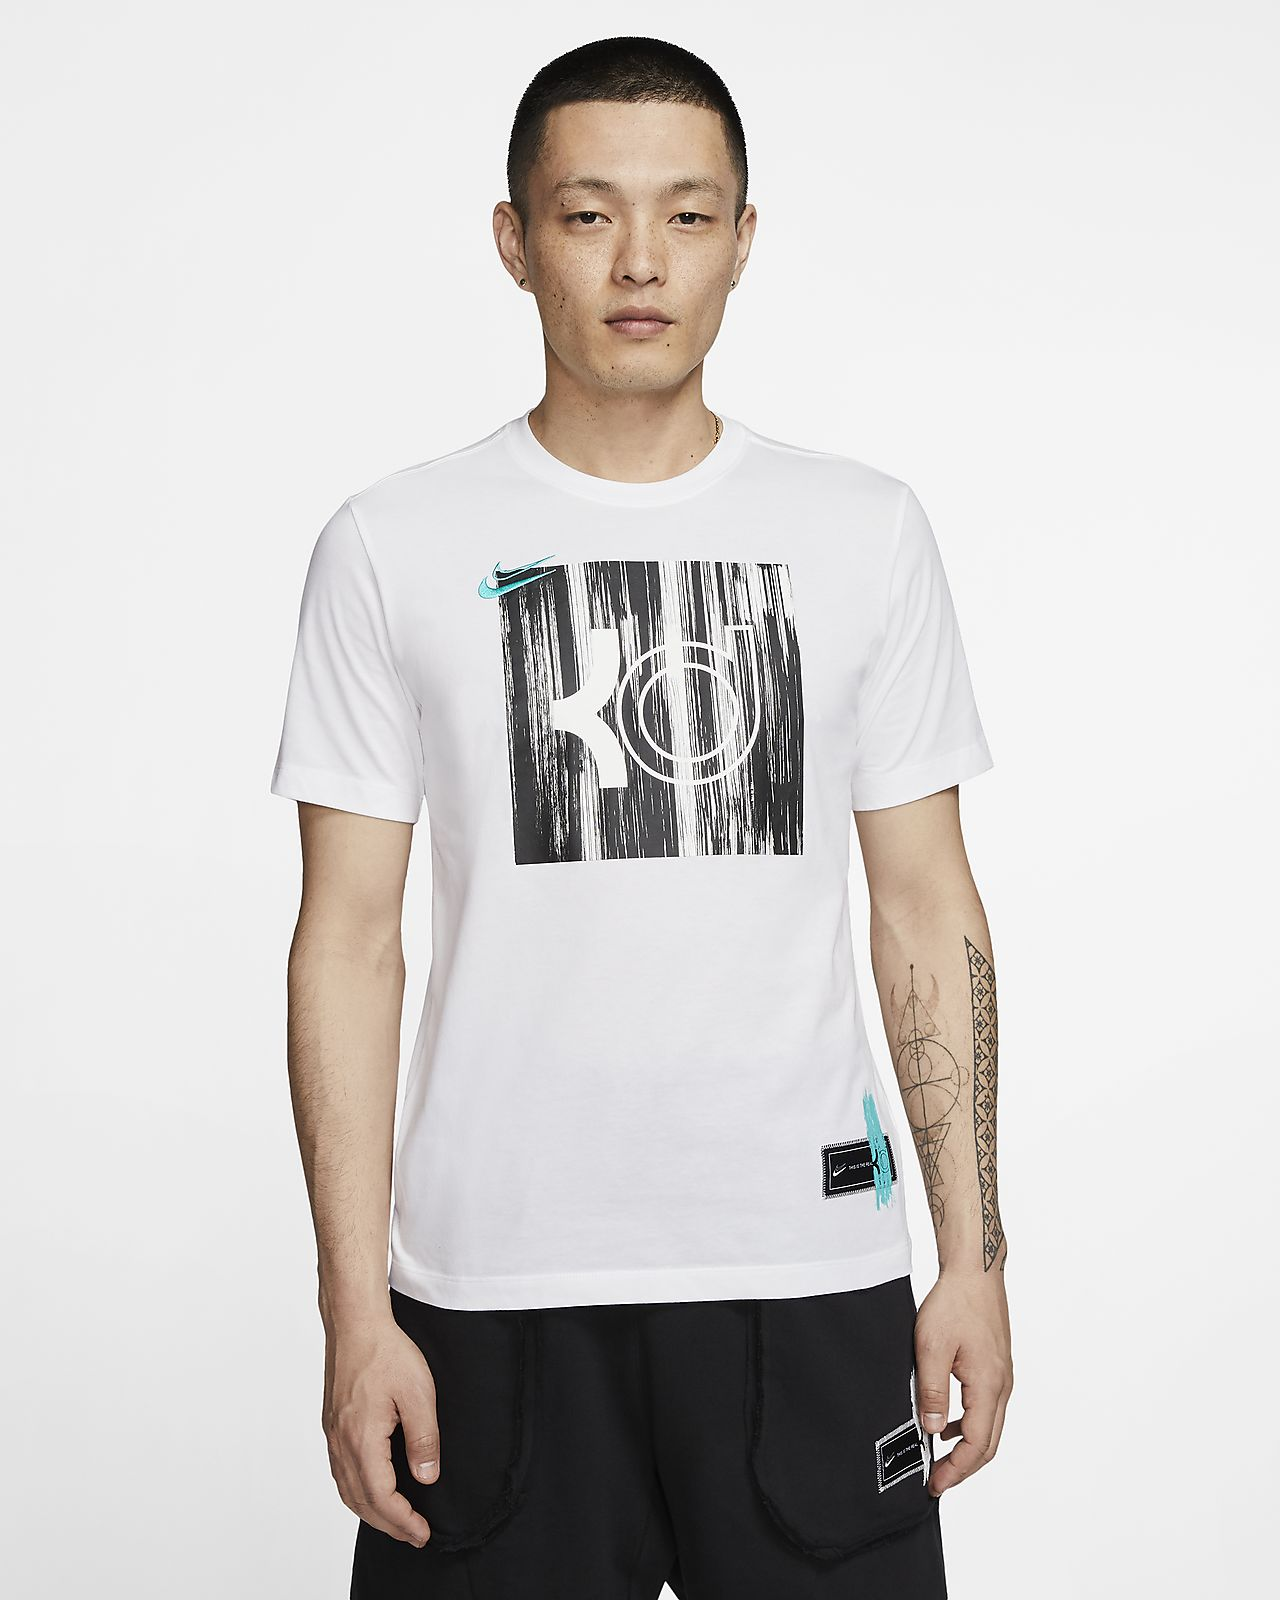 Nike Dri-FIT KD Logo Men's Basketball T-Shirt